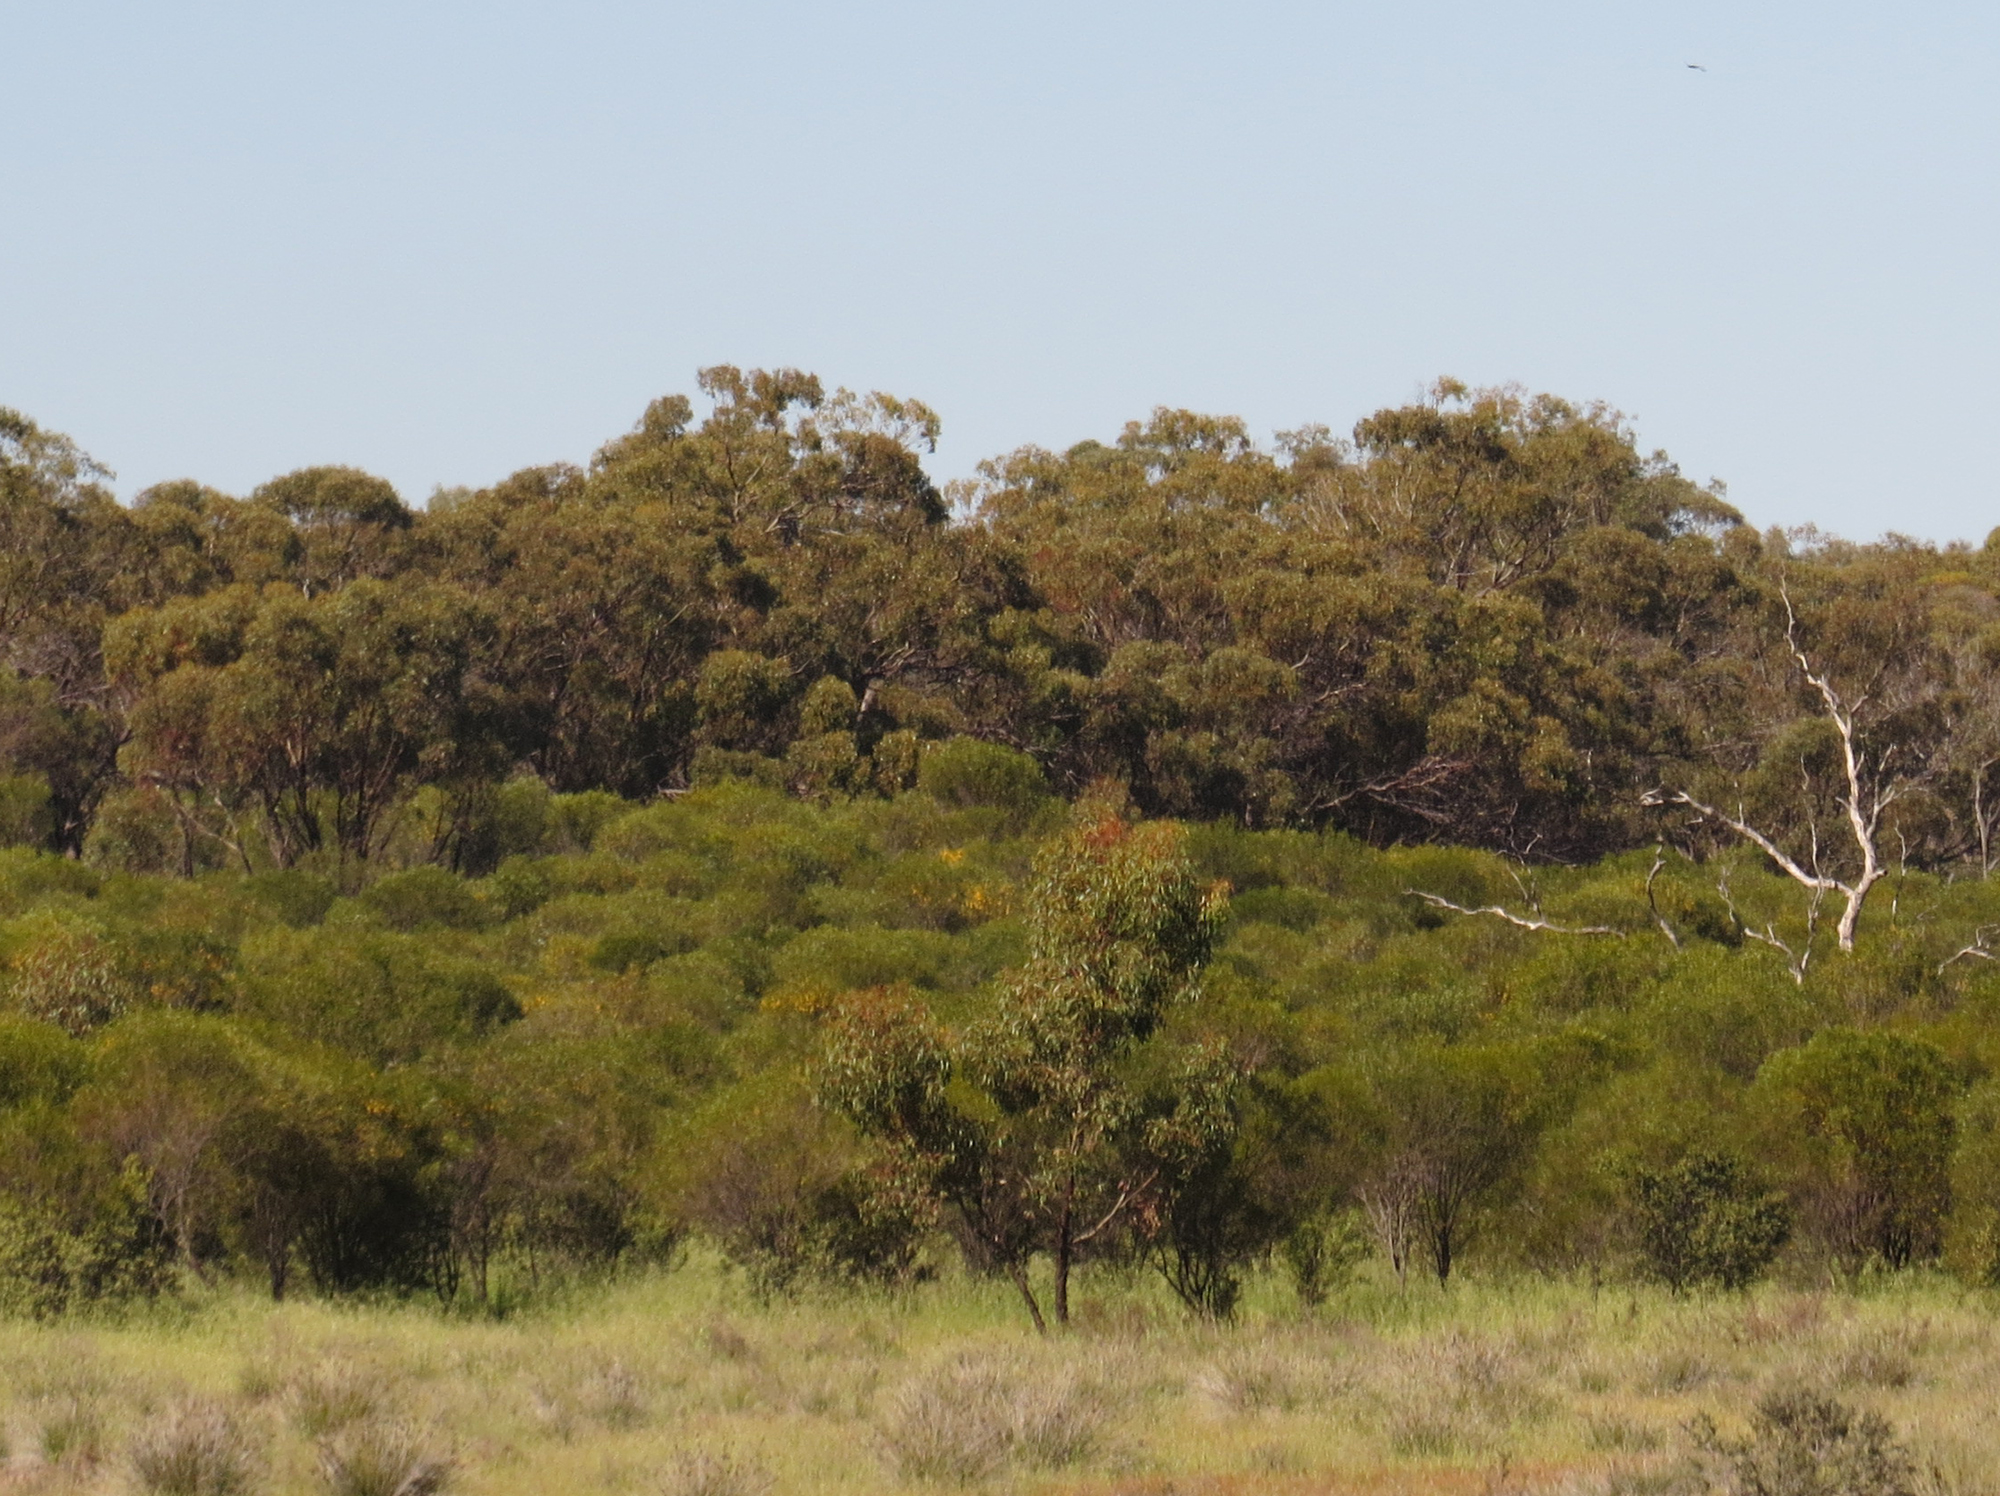 Three layers of vegetation - sandalwood in the background, jam in the mid ground and grassland in the foreground